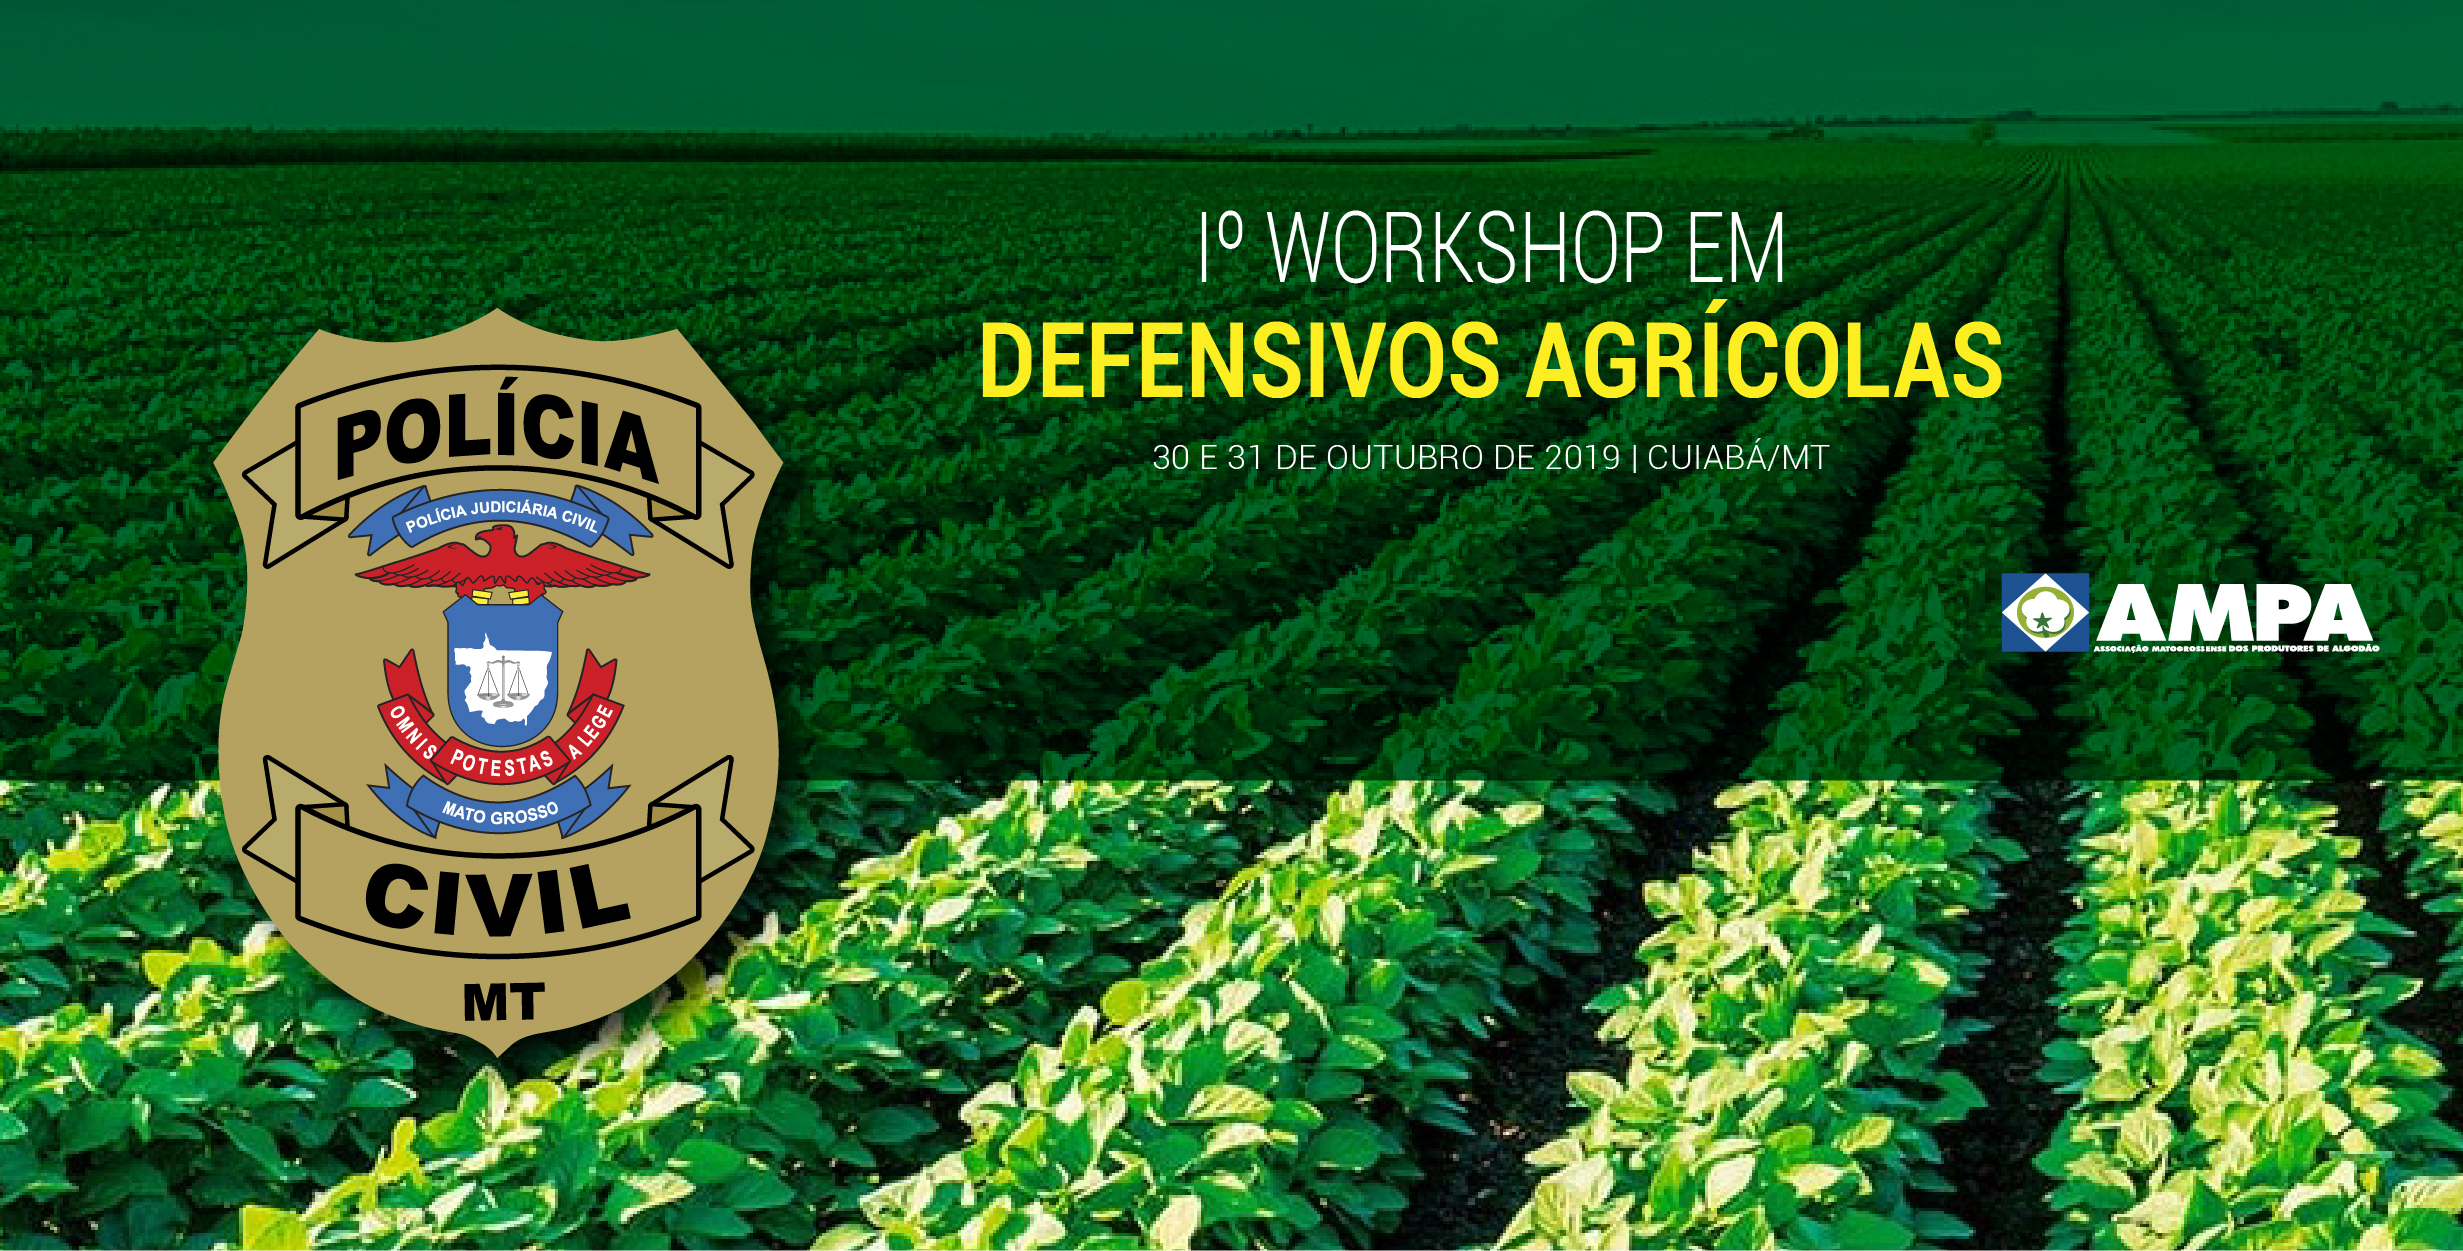 PJC - Workshop em Defensivos Agrícolas